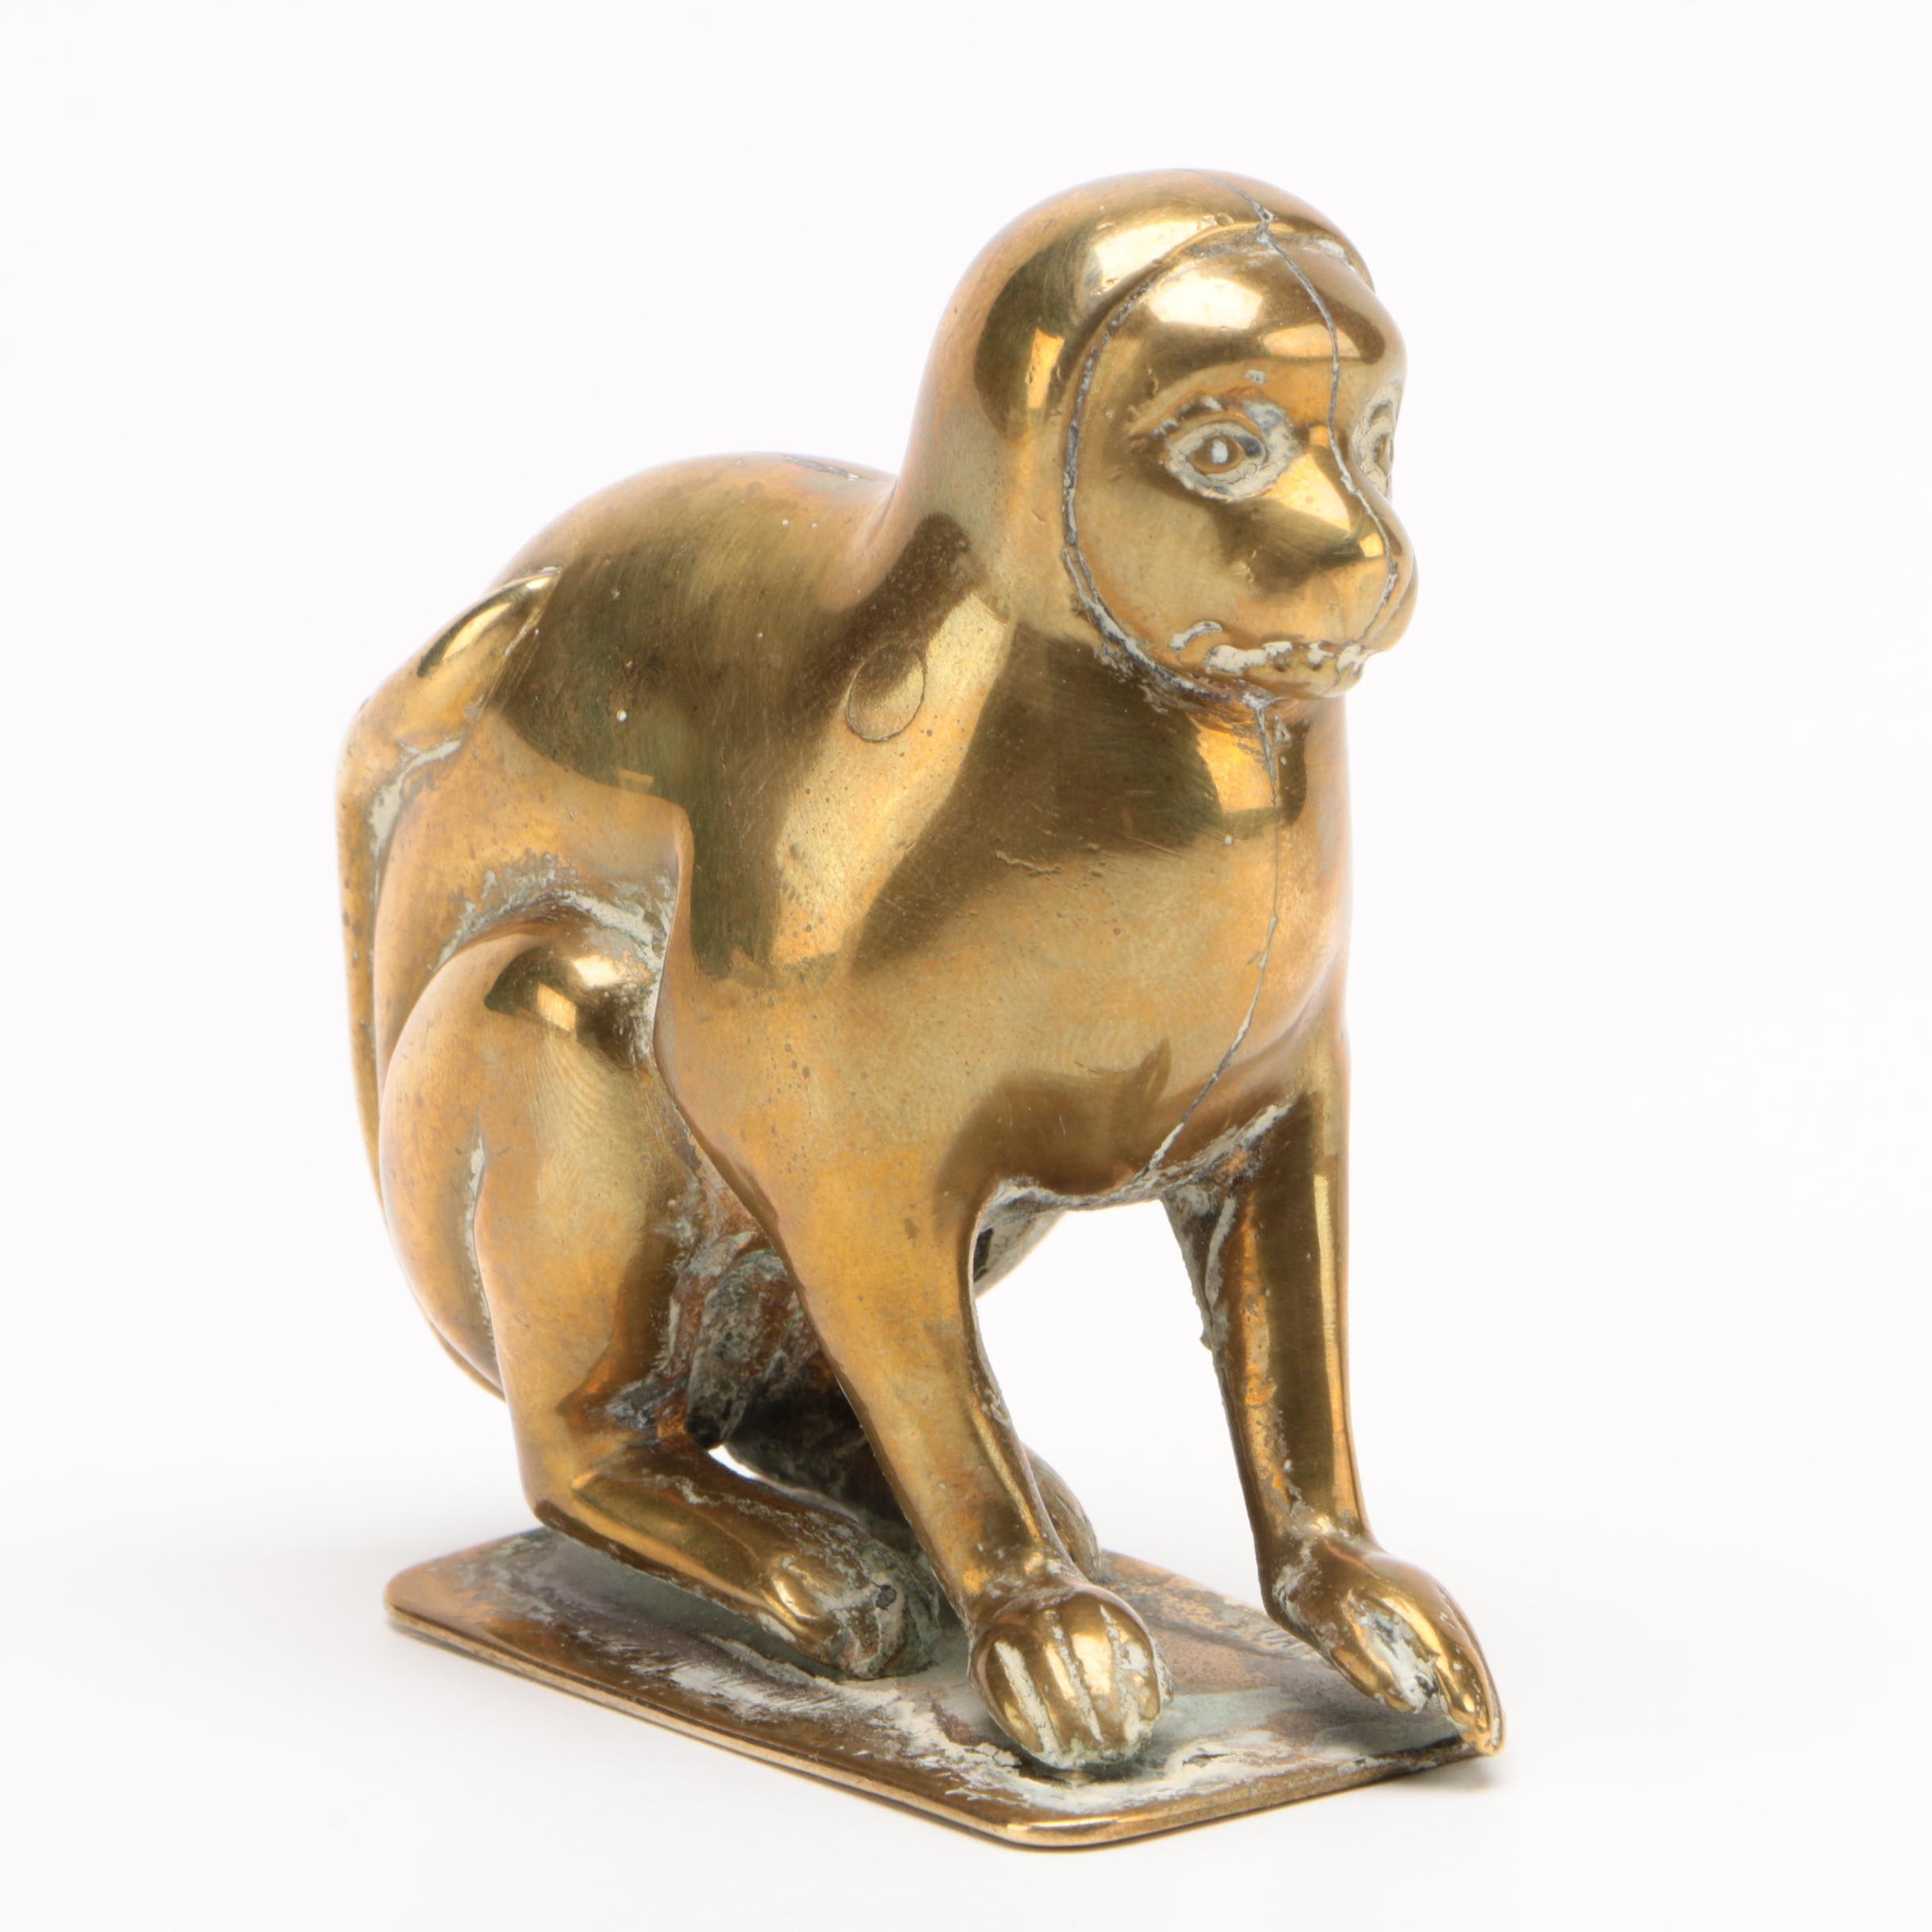 Patole Brass Monkey Figurine, 1930s